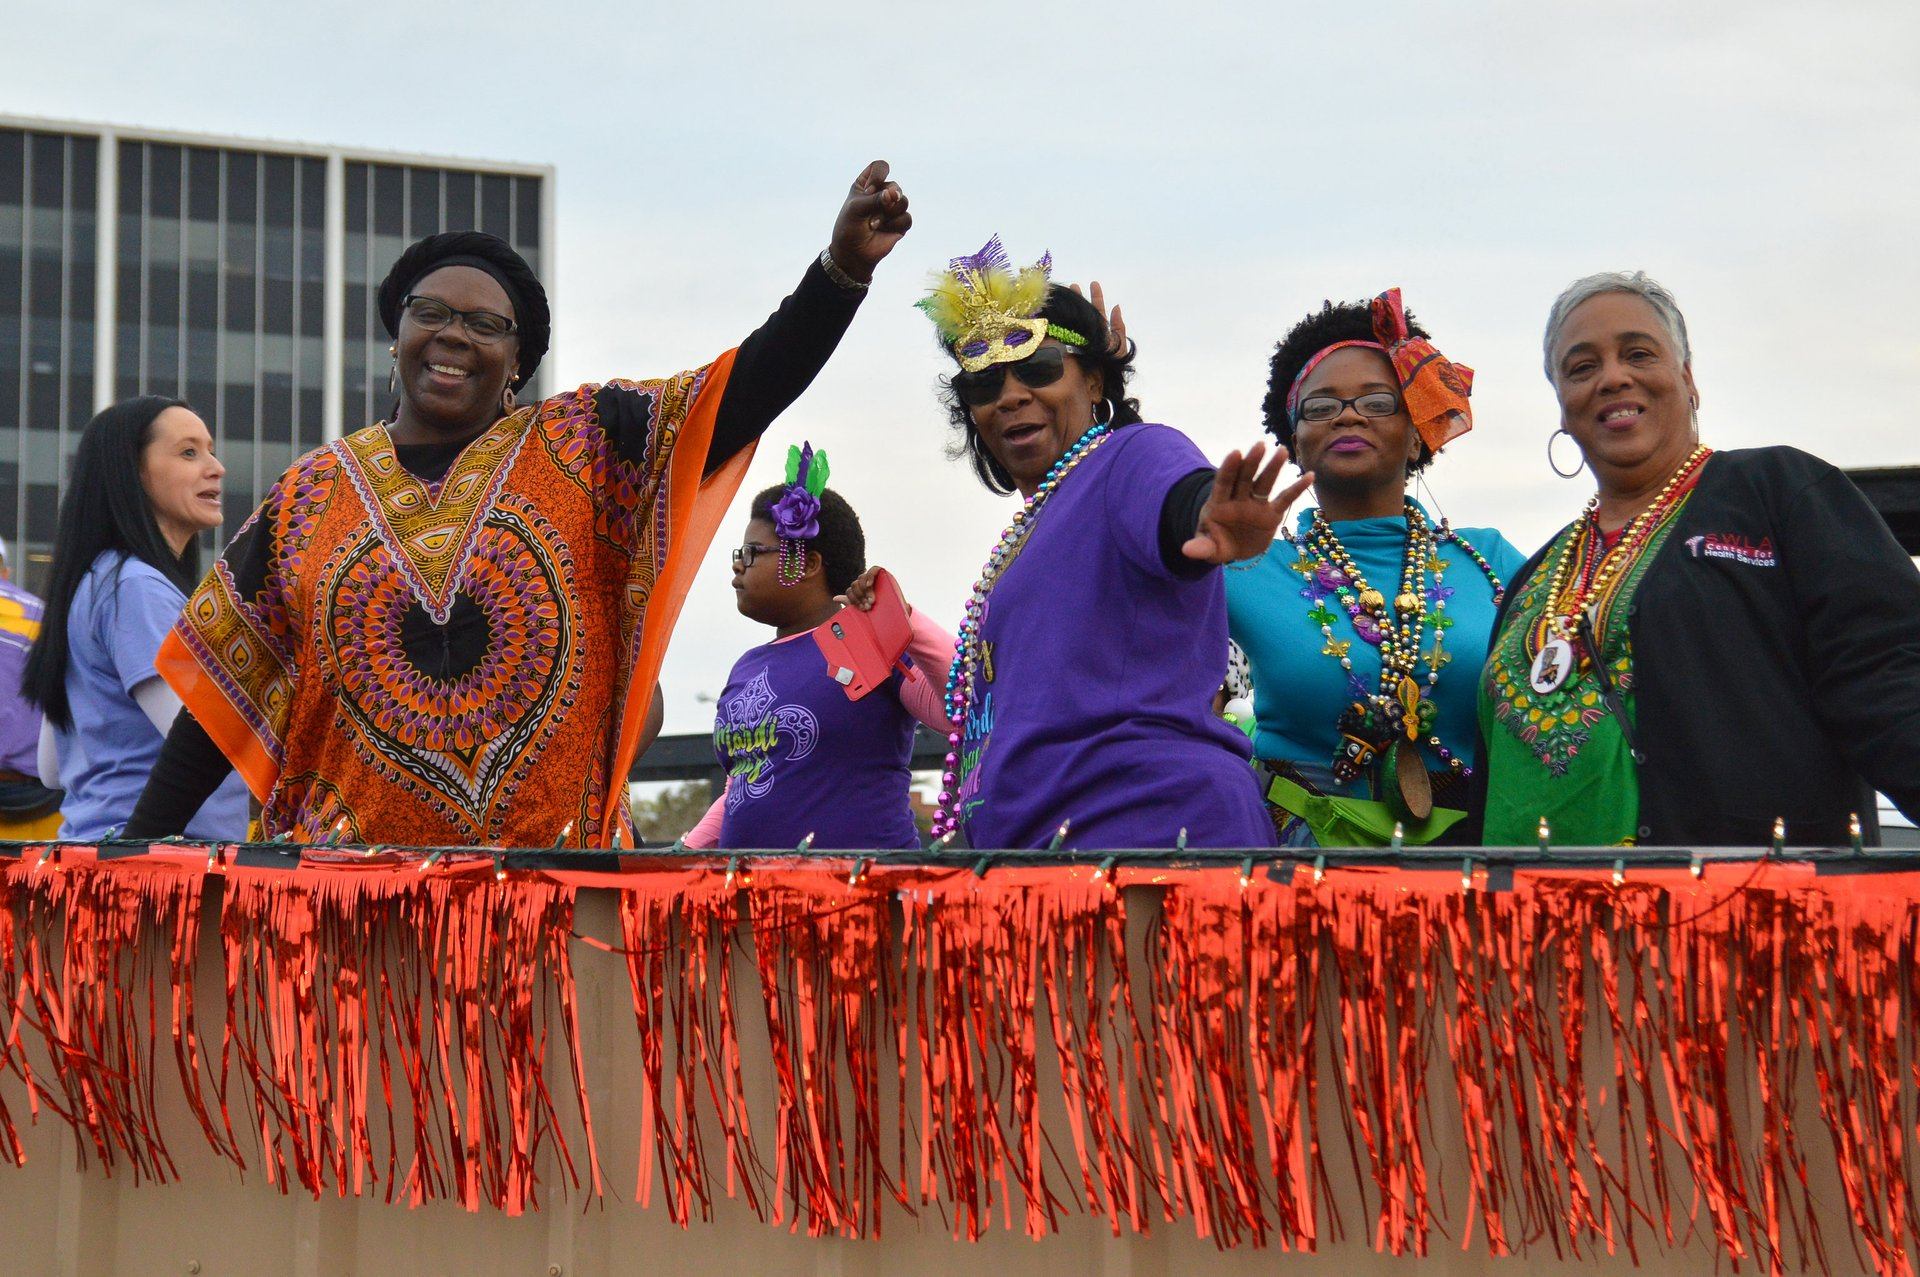 Waving from the float. The setup scene to the Merchants' Parade in Lake Charles 2020